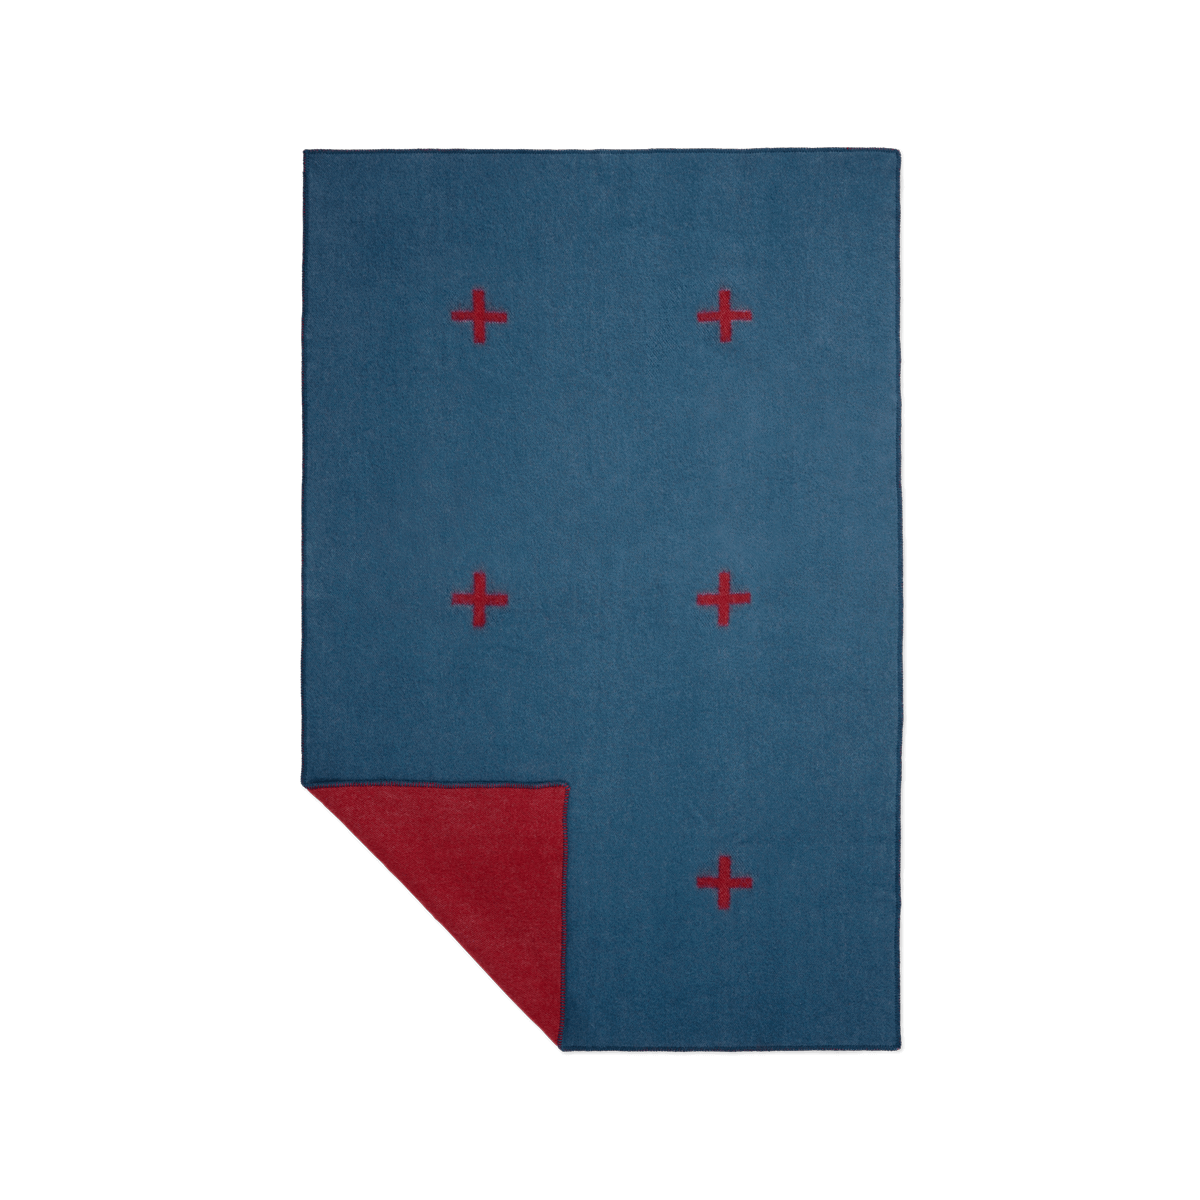 Product image of wool blanket Plus in the color blue with a graphic plus pattern in red.